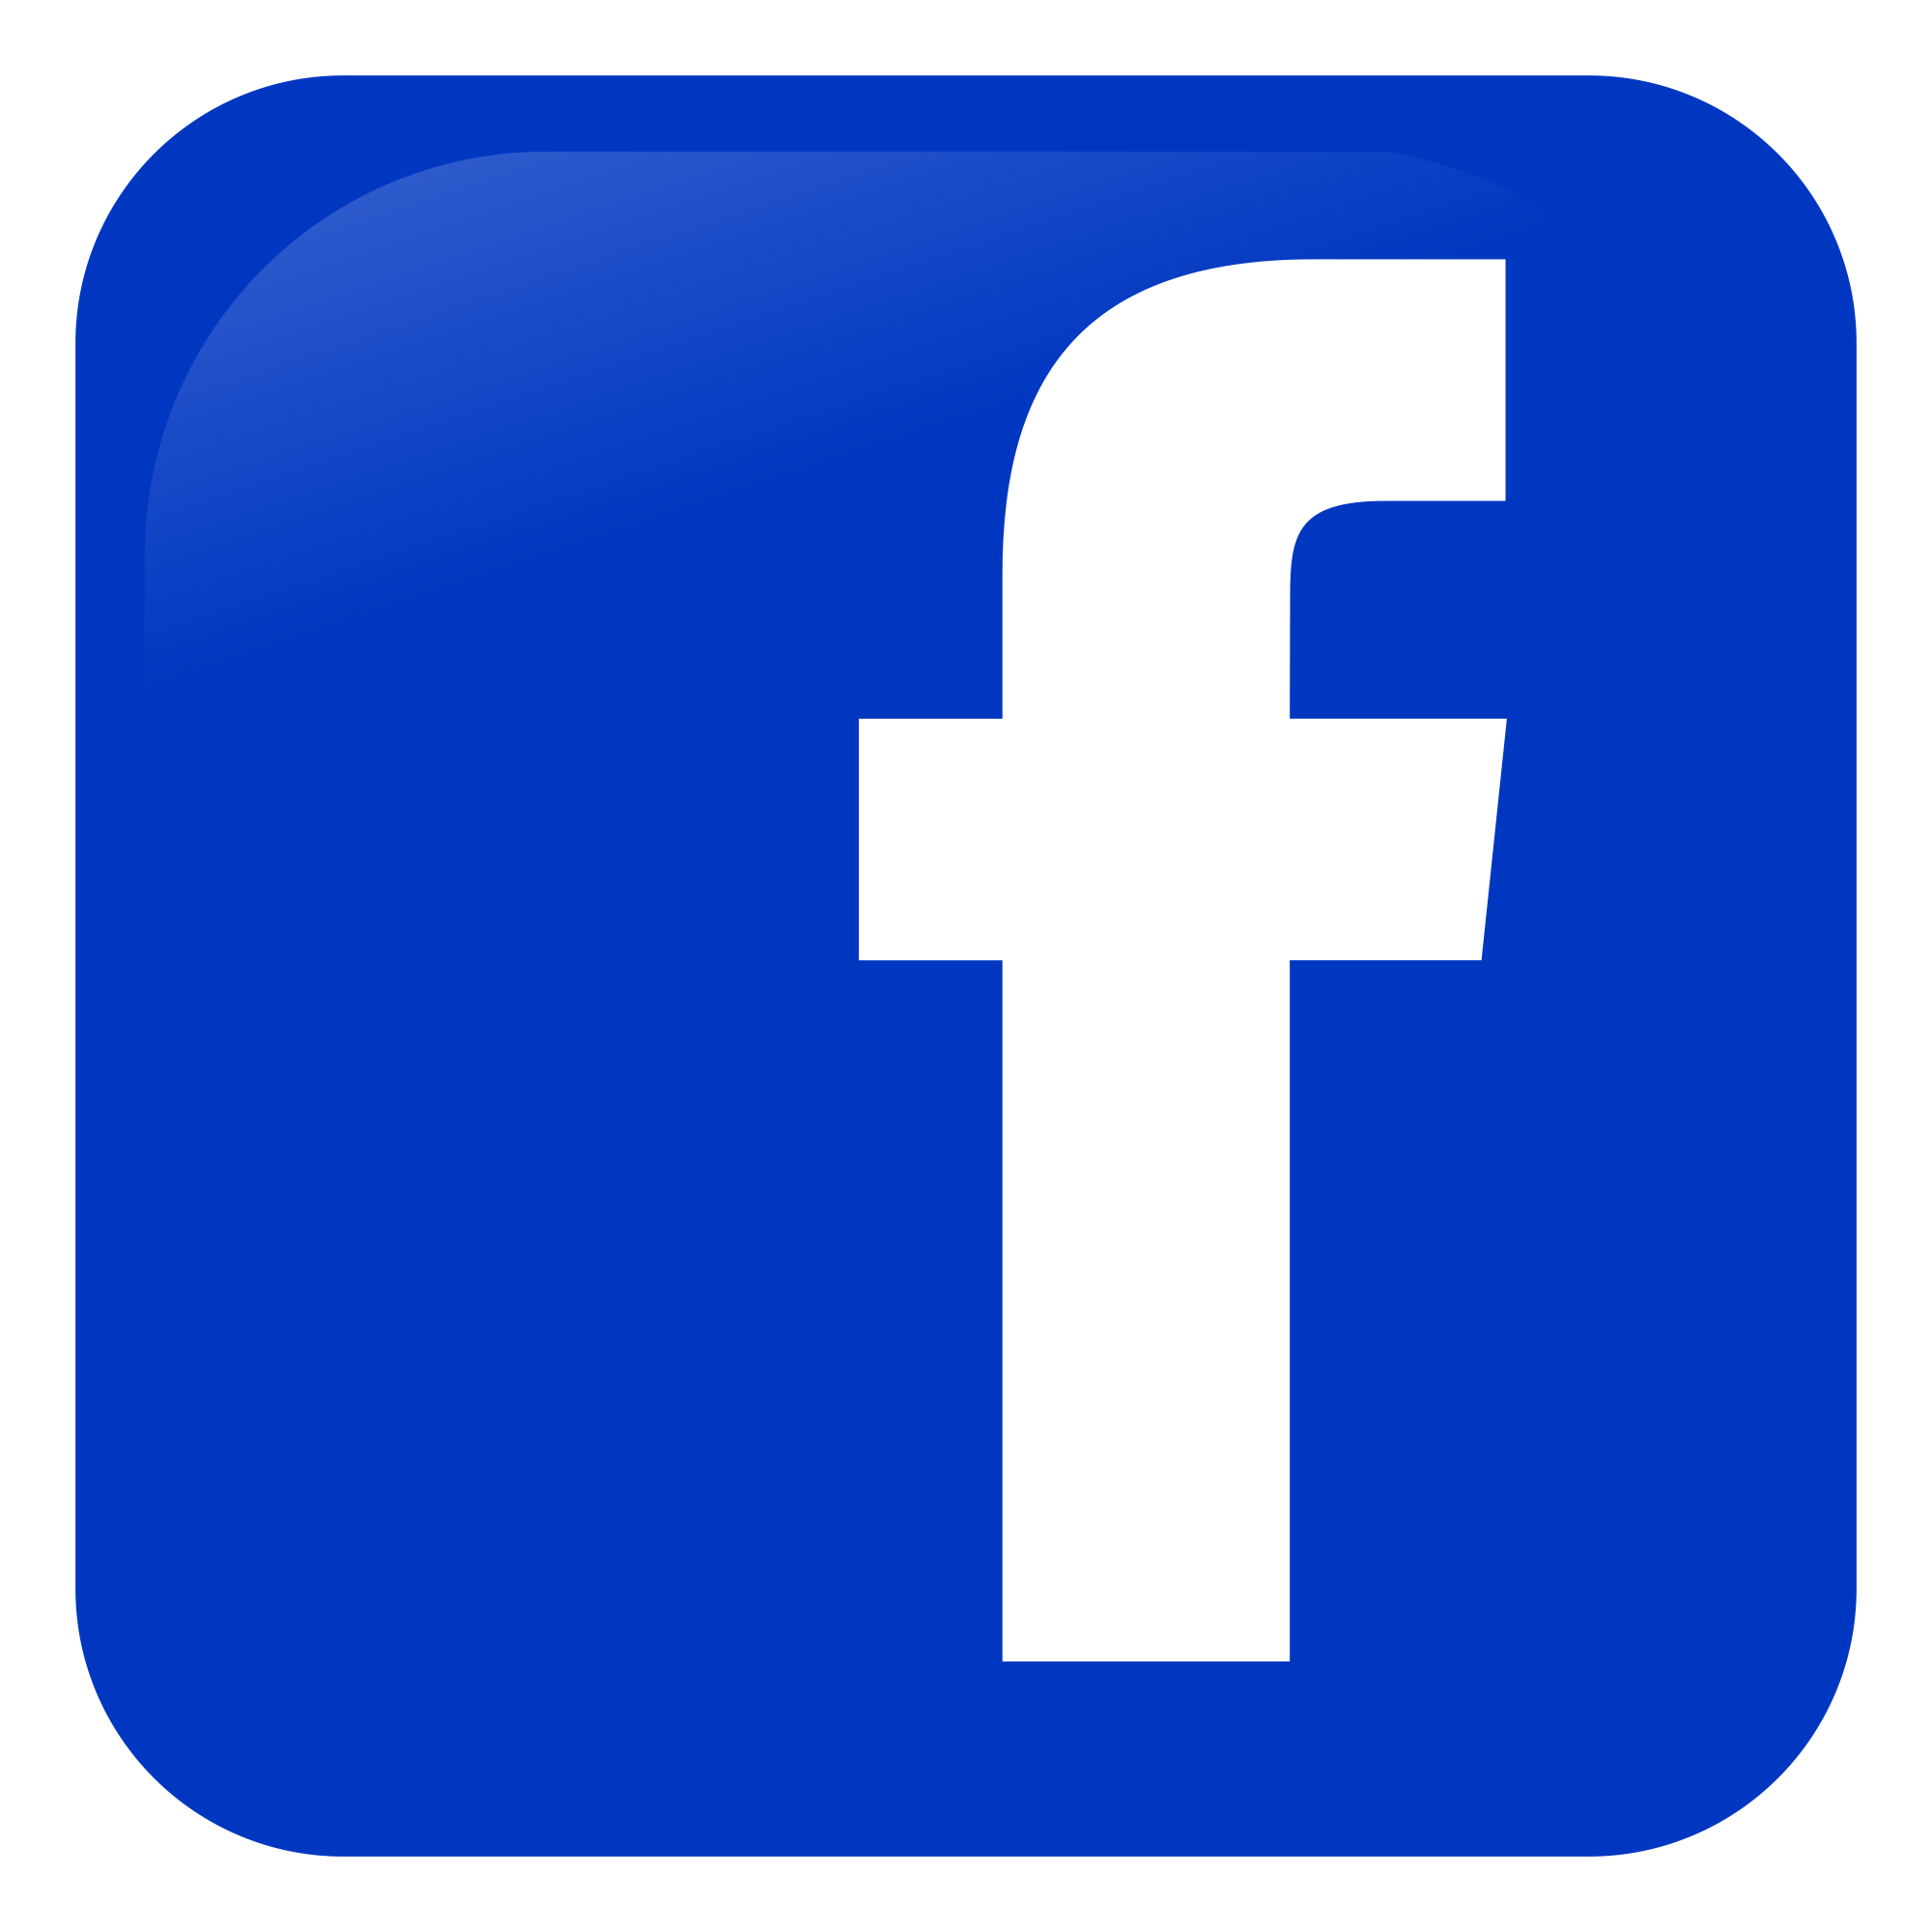 https://www.freeiconspng.com/uploads/facebook-logo-3